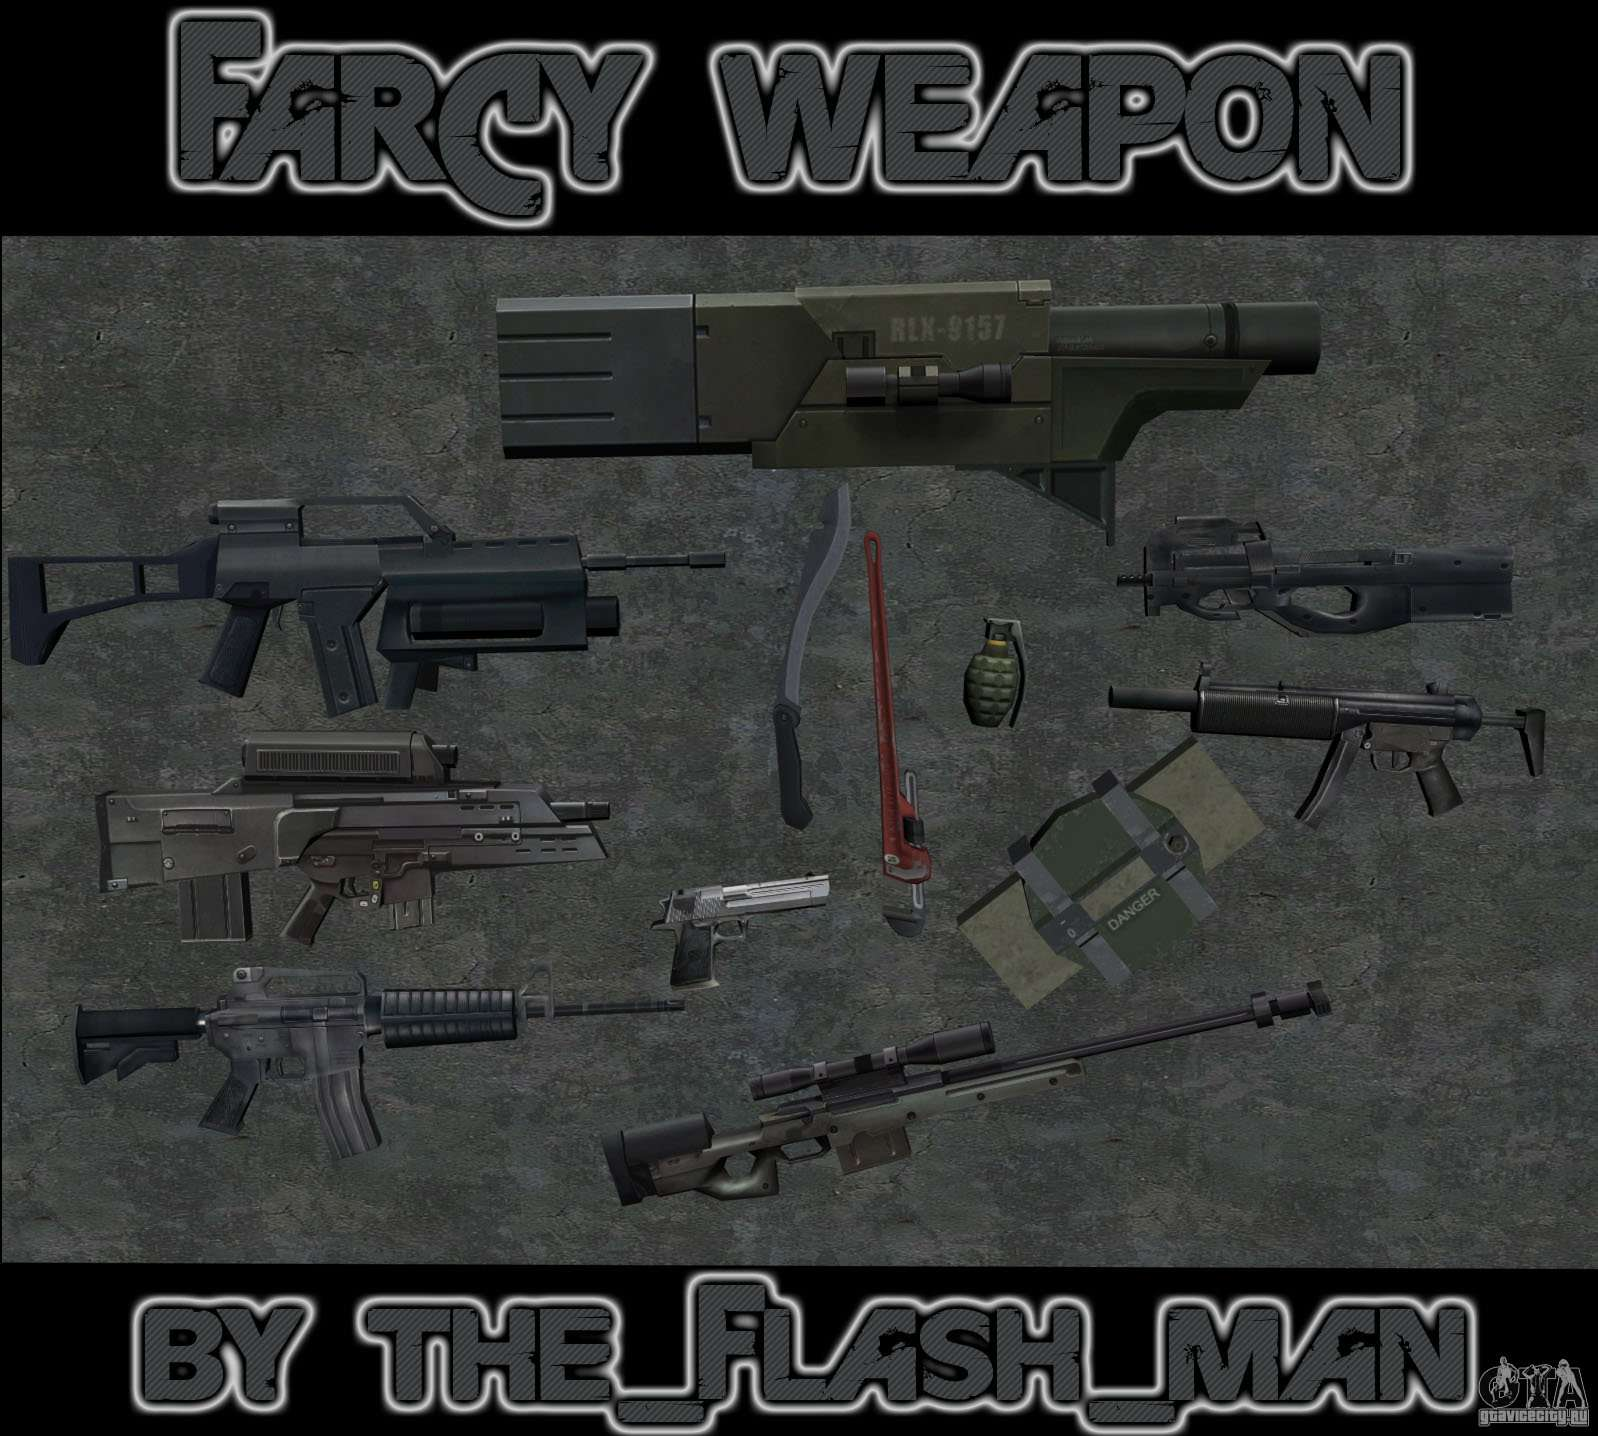 1731 Farcry Weapone also 12491 Fgm 148 Dzhevlin likewise Gravensteendebat 15 April Te Gent as well 58465 Skins Weapon Pack Csgo together with 2641 Pack Oruzhiya Iz Star Wars. on original bat phone